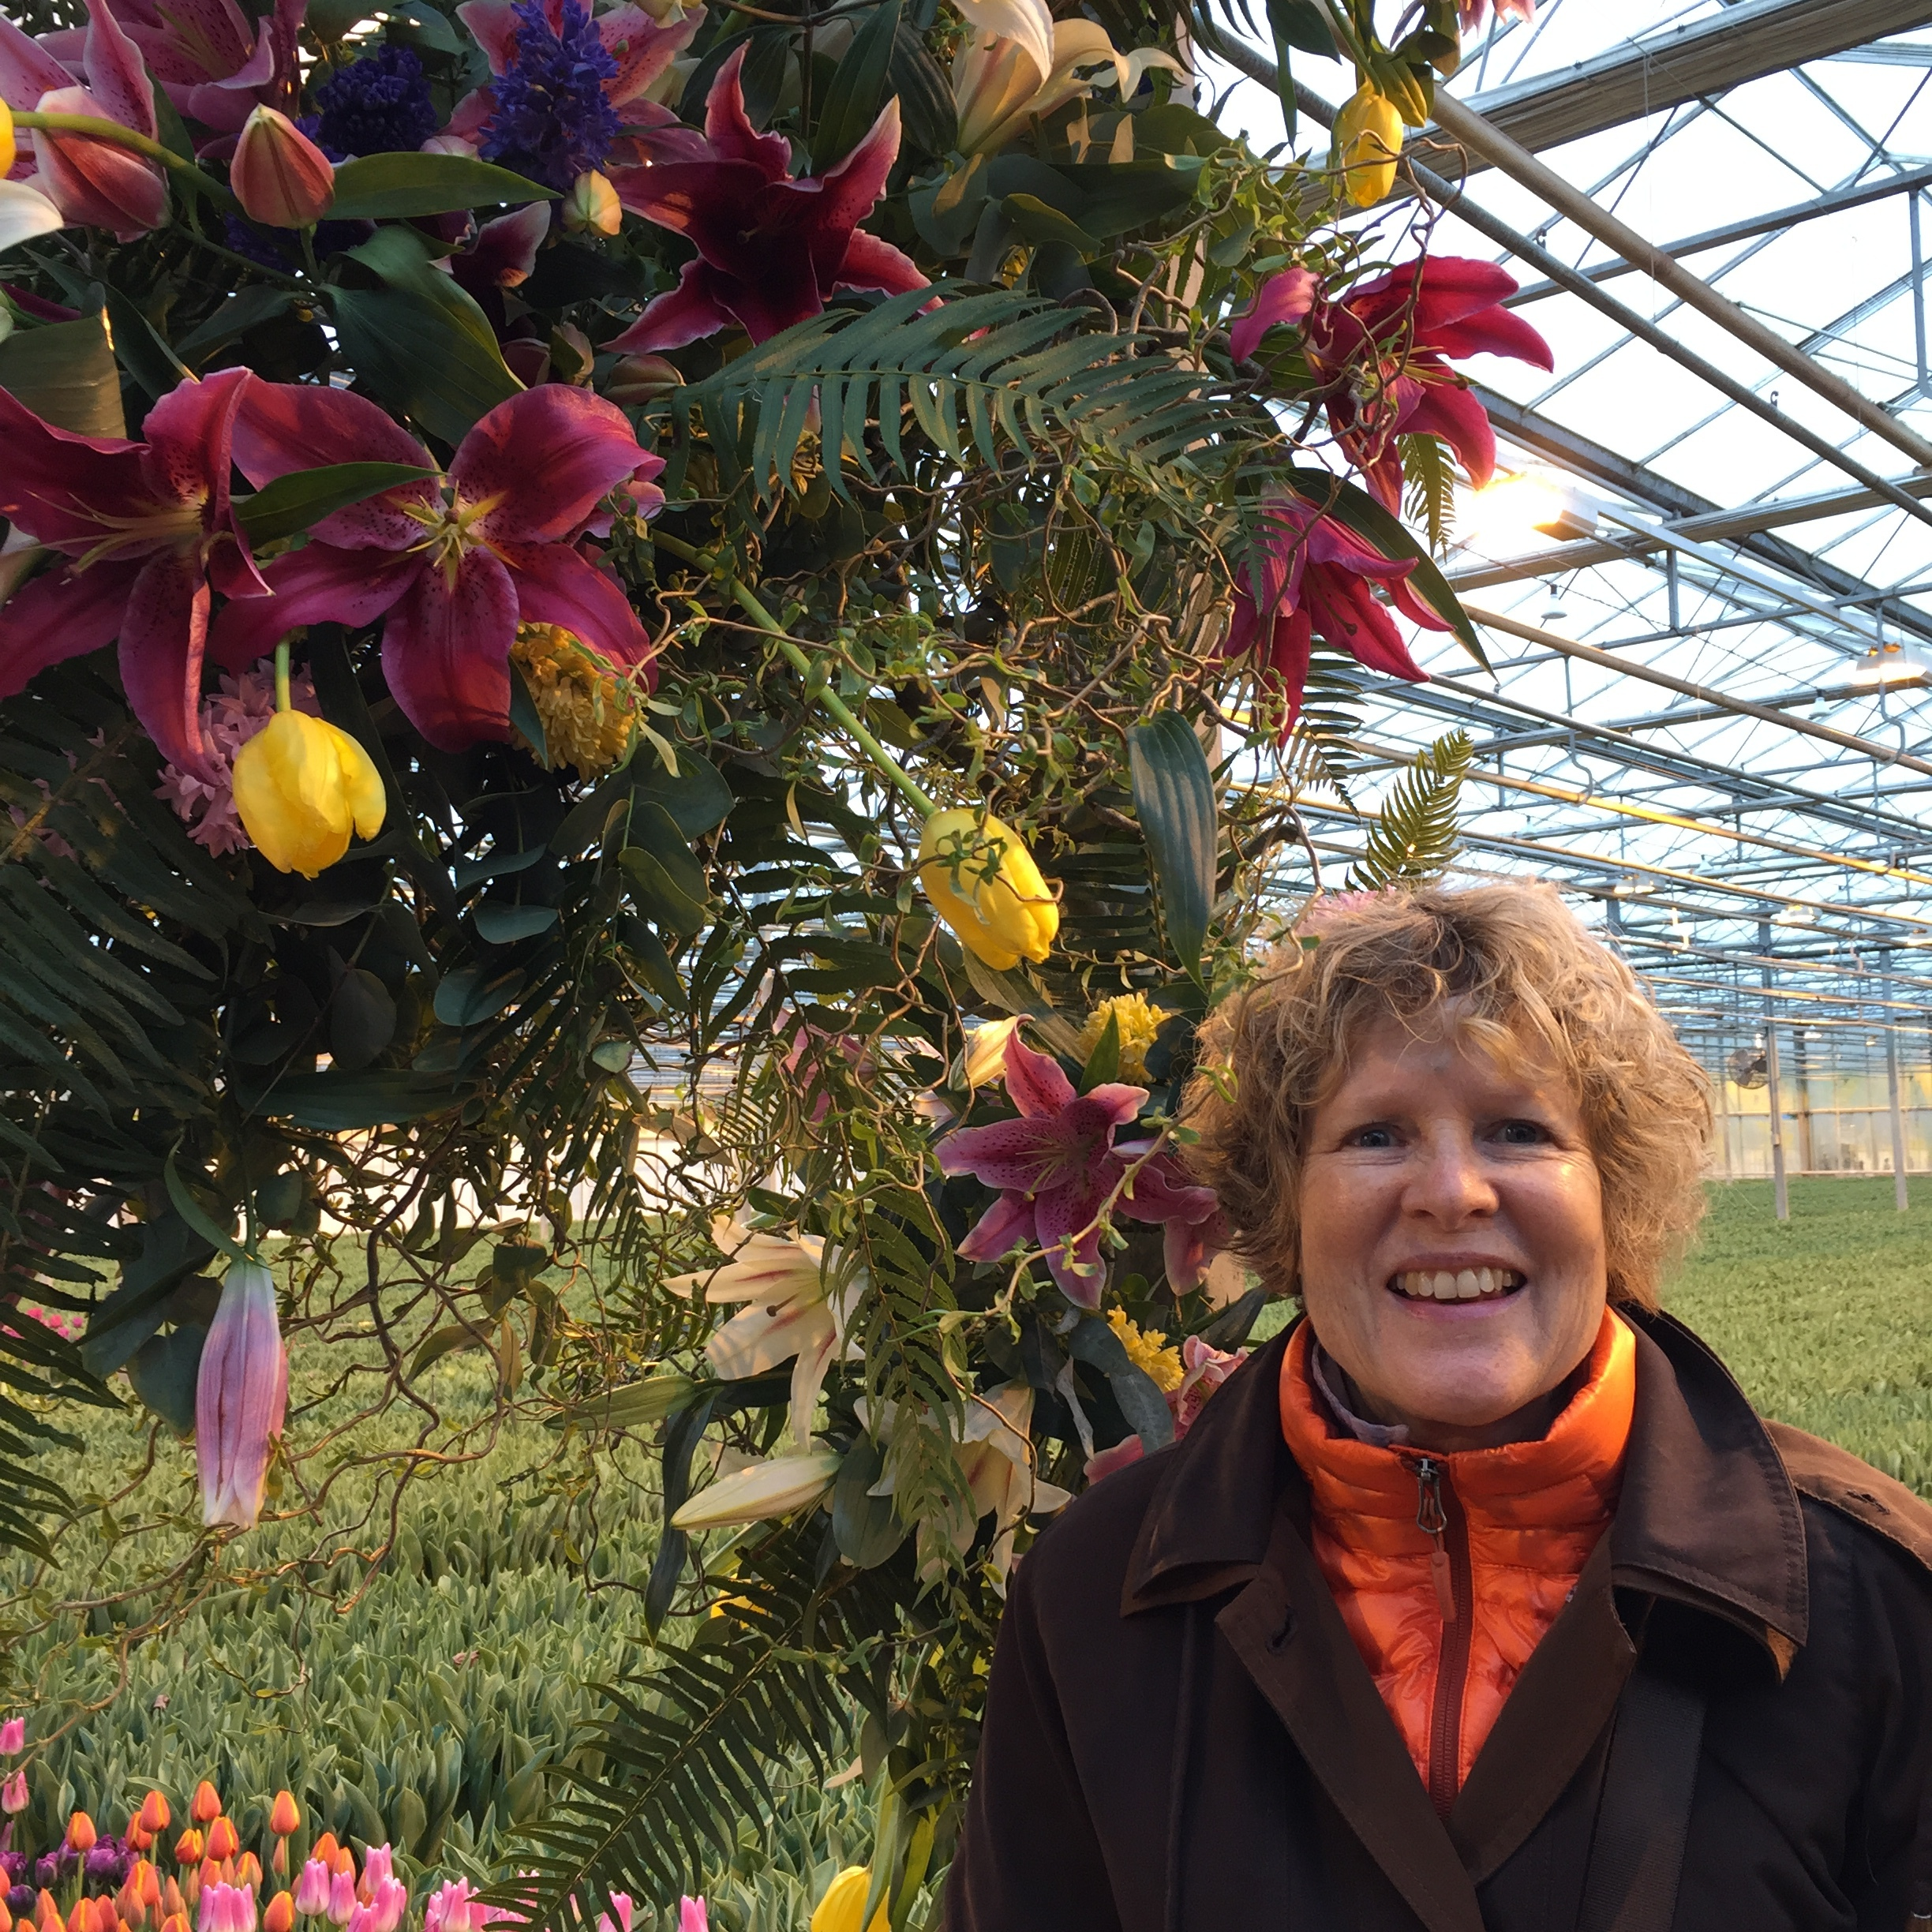 Kathrin Green - Kathrin comes from 27 years in retail in England.2 years ago she took a 2 week Professional Business of Floristry Course from the Judith Blacklock Flower School in Knightsbridge London. From this course she got an apprenticeship with Papillon Floral Design in California. Through this apprenticeship she became aware of the North Bay Collective, a group of flower farmers and floral designers, including Nichole Skalski.Kathrin lives with her family in Sebastopol, CA.